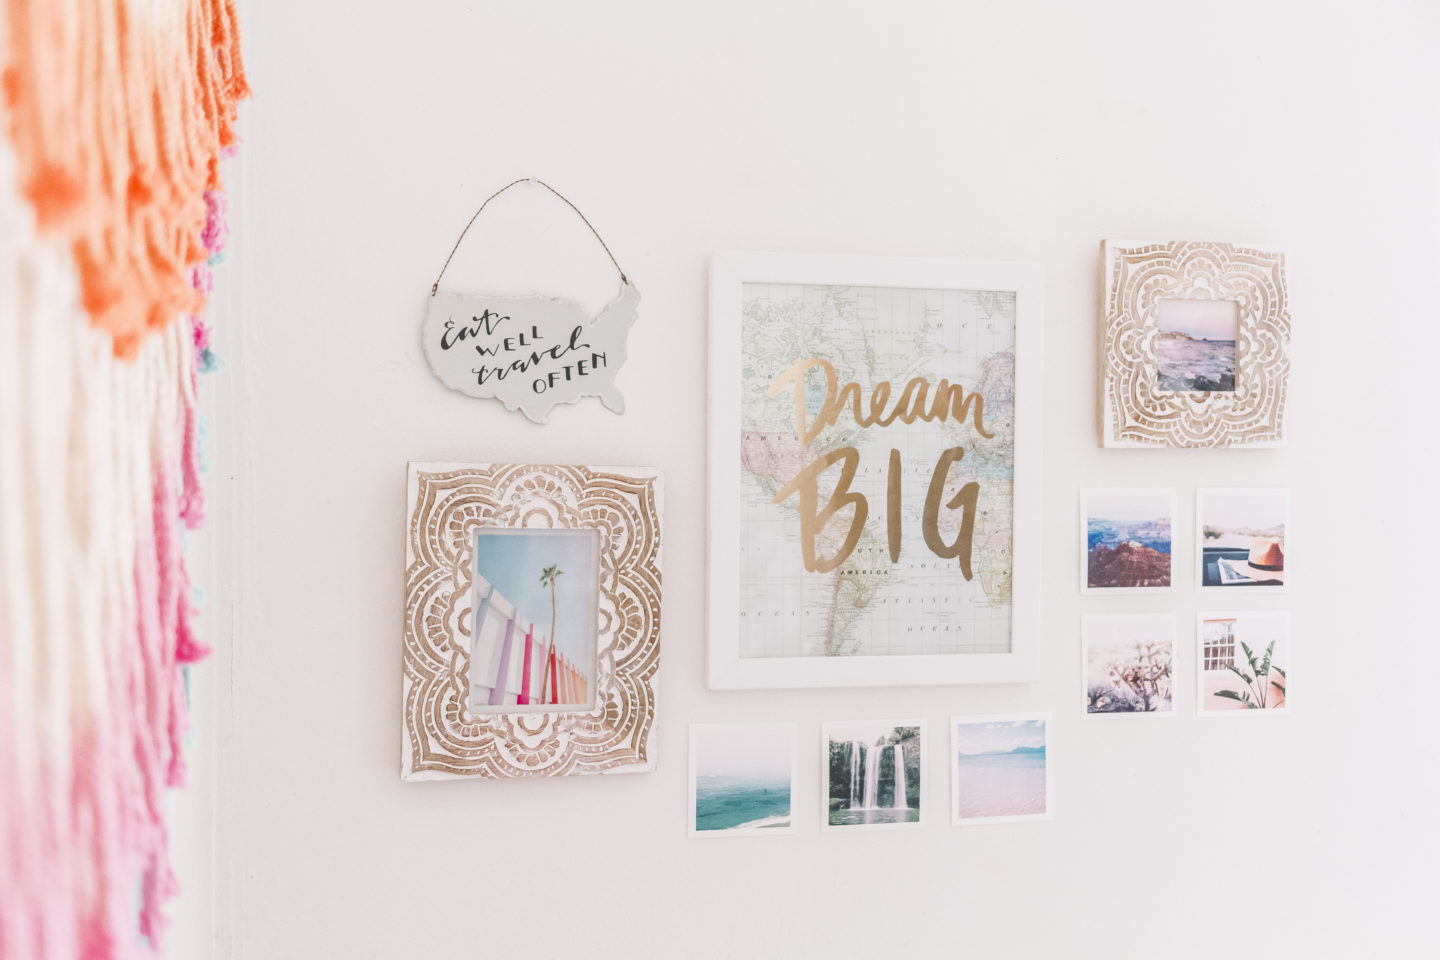 small gallery wall, bright boho chic bedroom #mypbteen #sponsored